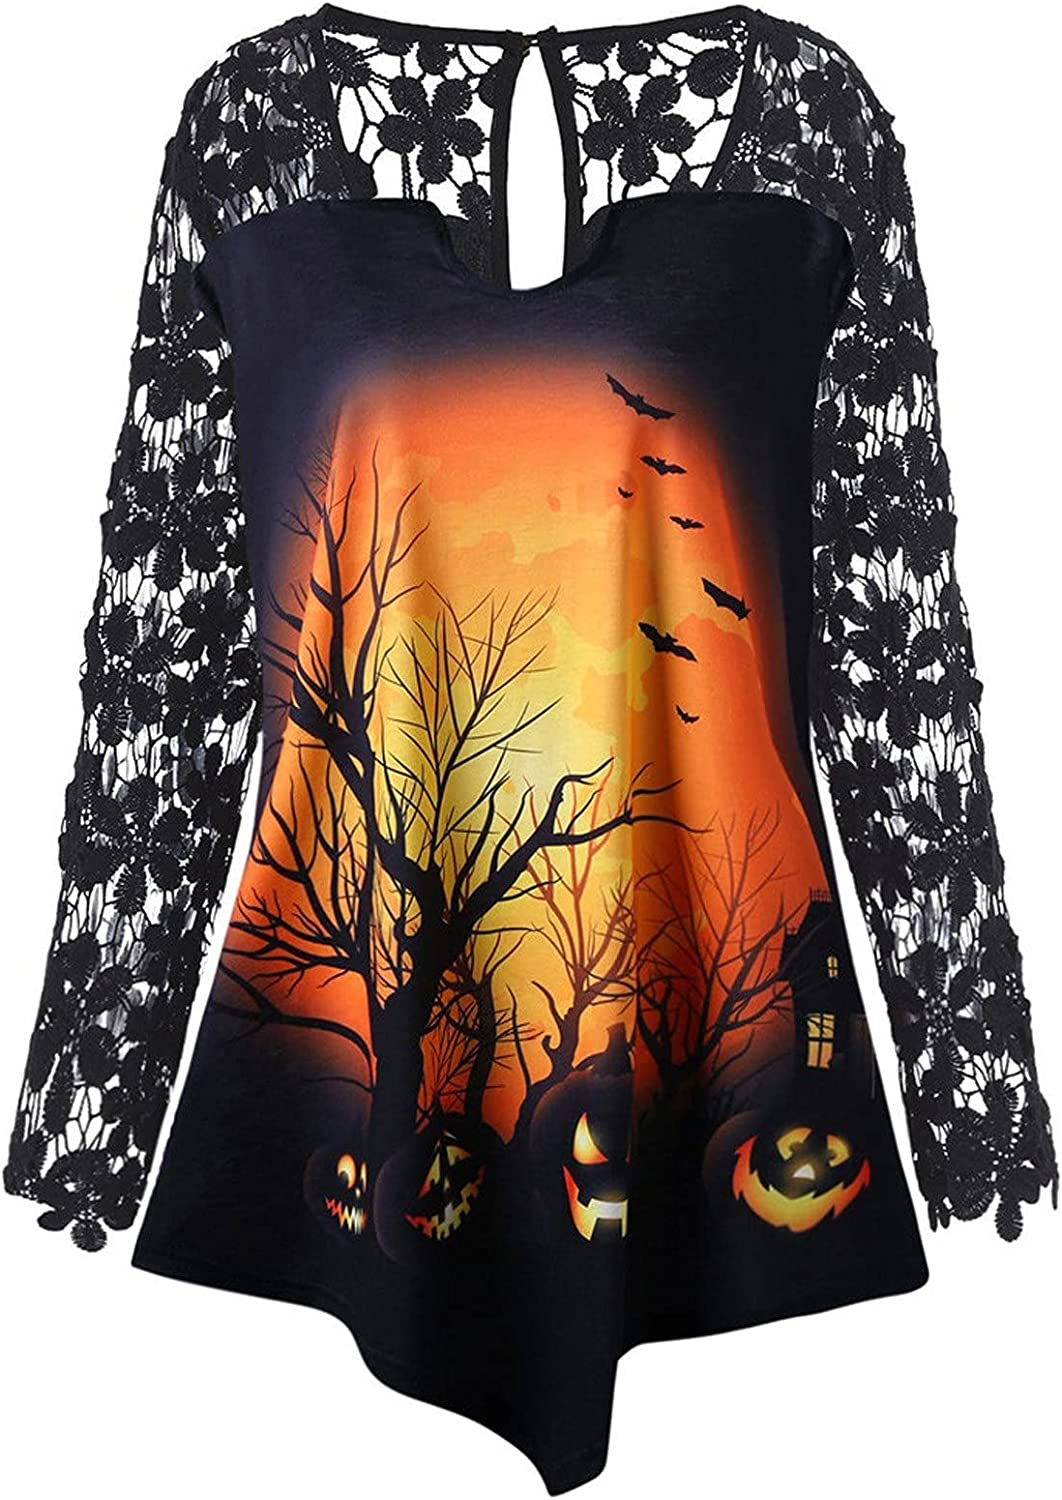 Jchen Halloween Shirt for Women Long Floral Patchwor Popular shop is the 40% OFF Cheap Sale lowest price challenge Sleeve Lace